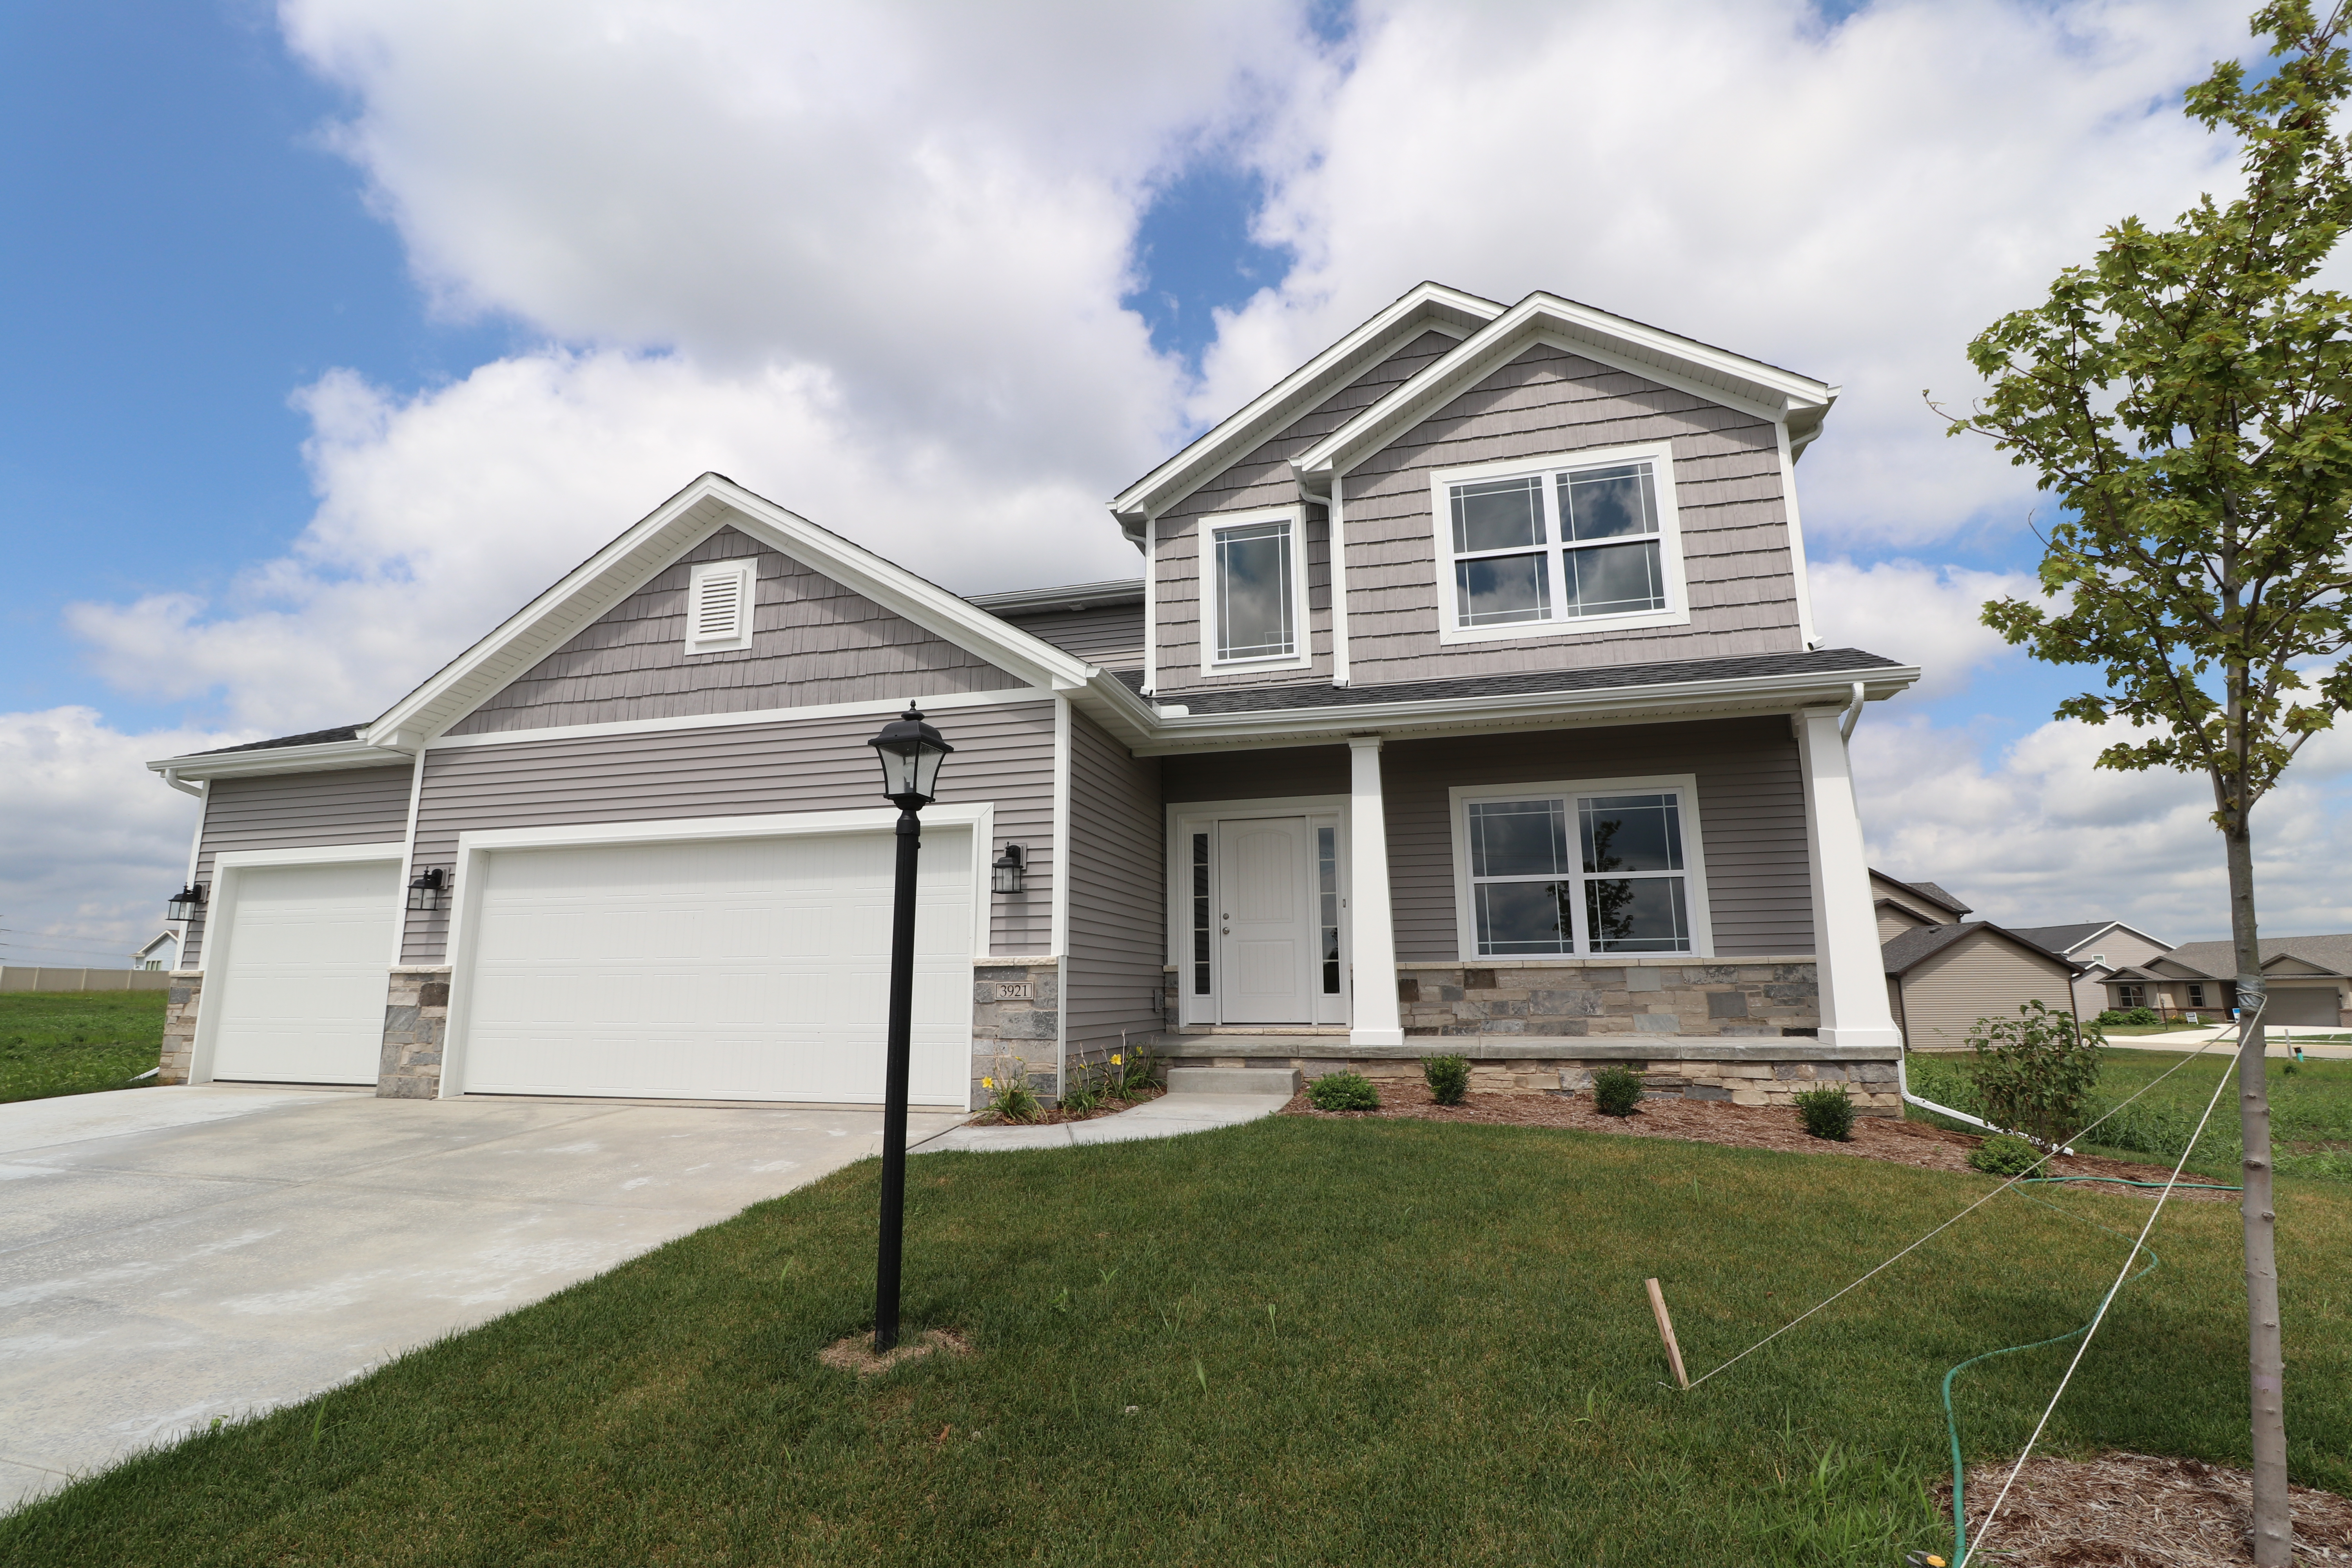 House for sale in the Dunlap peoria area exterior